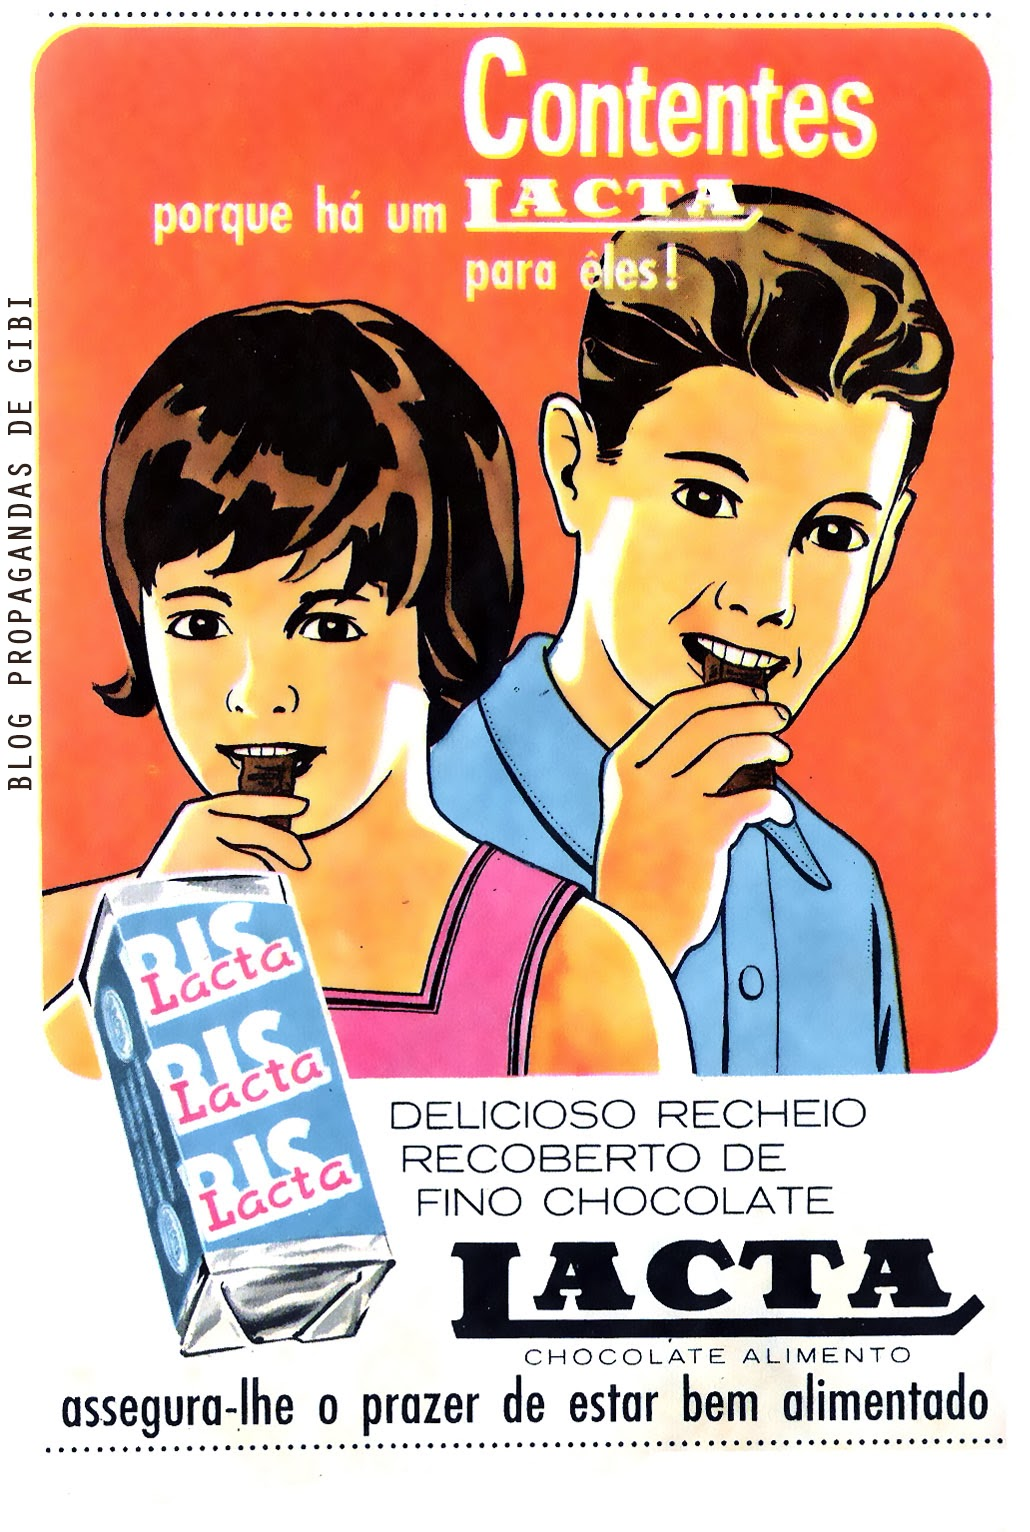 Propaganda do chocolate Bis (Lacta) em 1963.